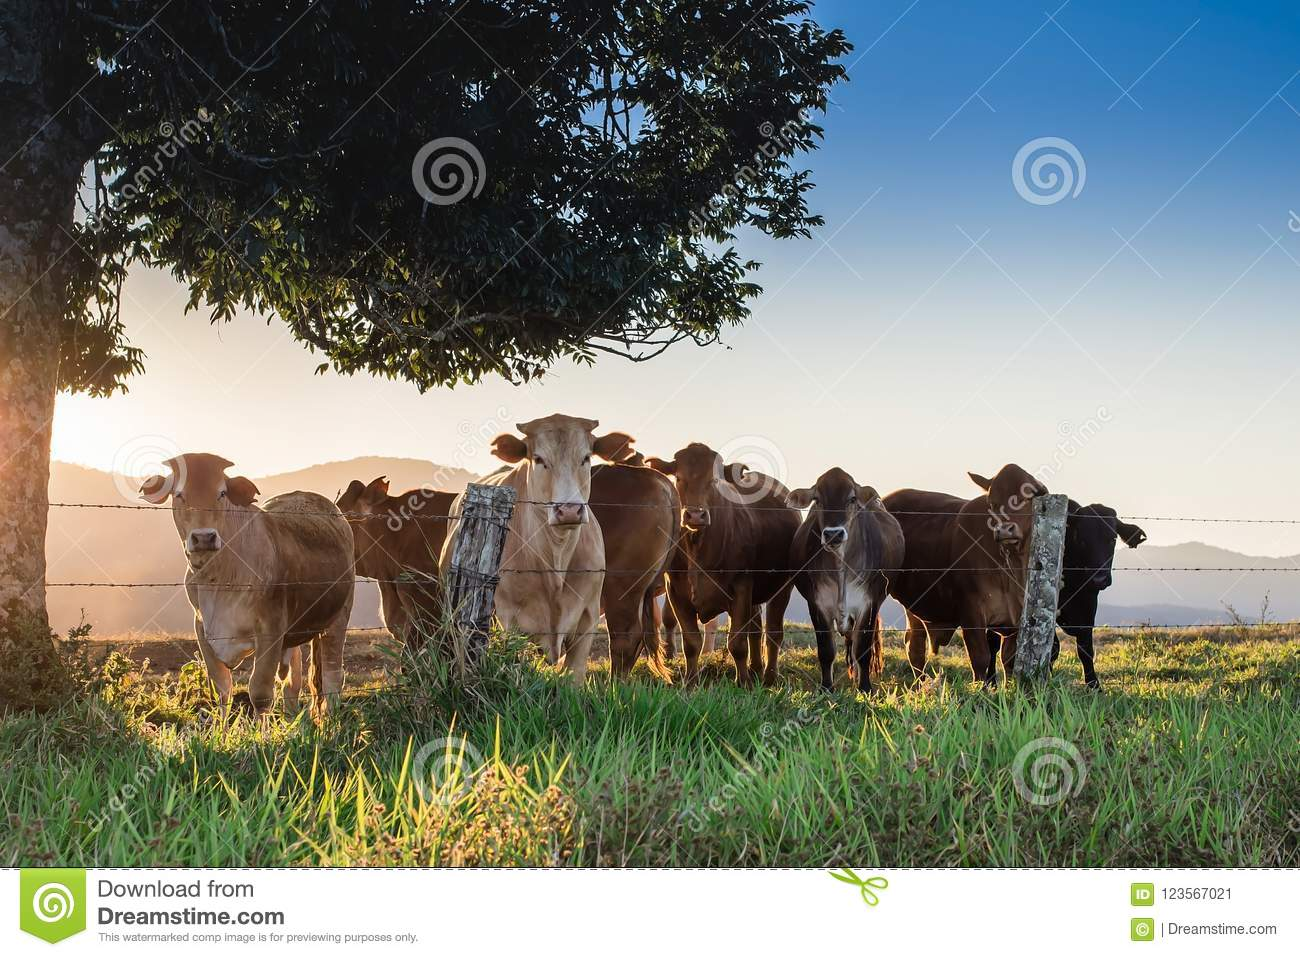 Cows under the tree